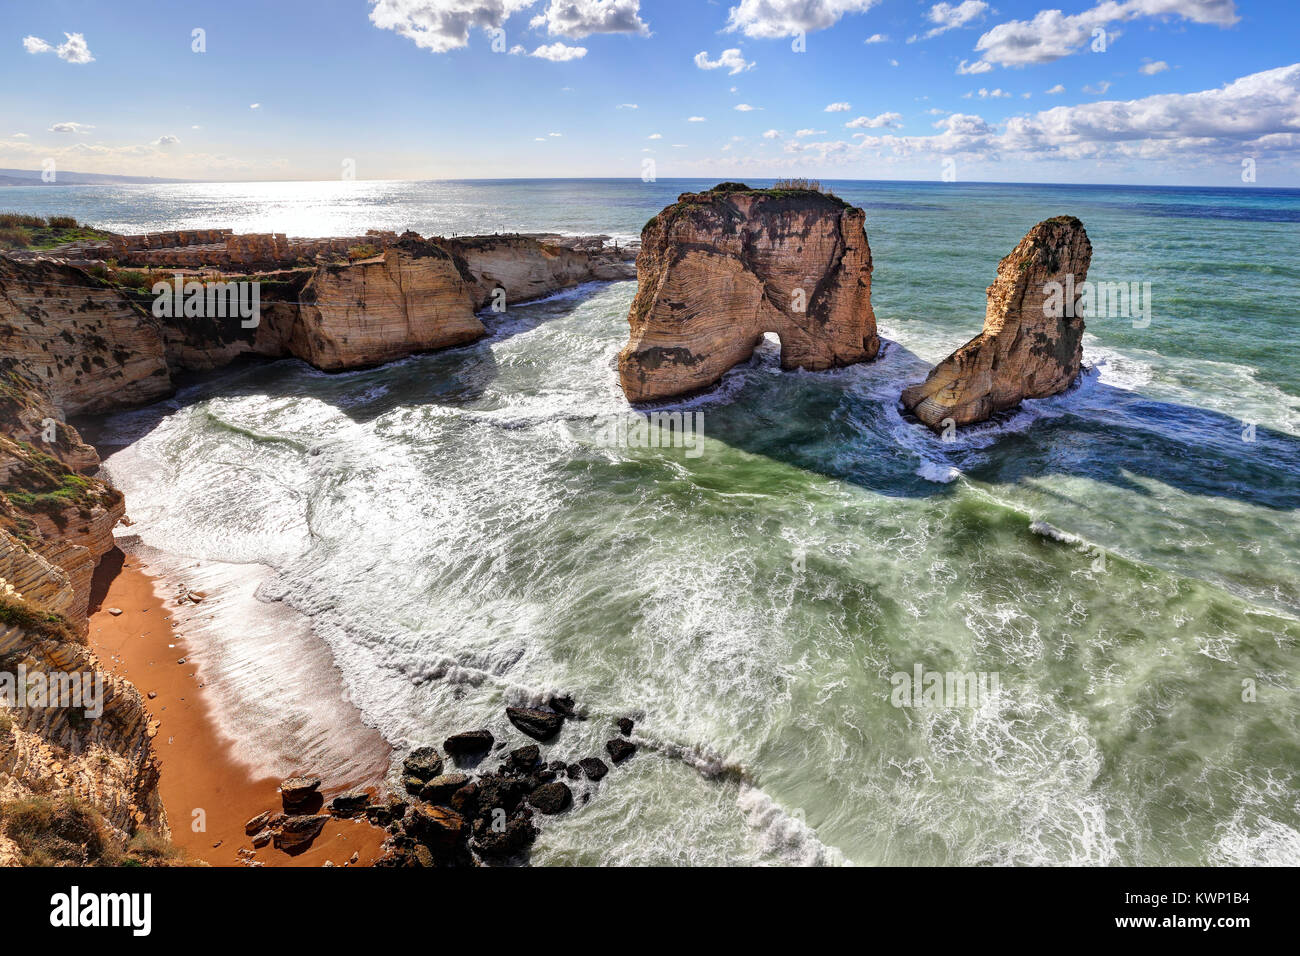 Pigeon Rocks and Dalieh, Beirut - Lebanon - Stock Image